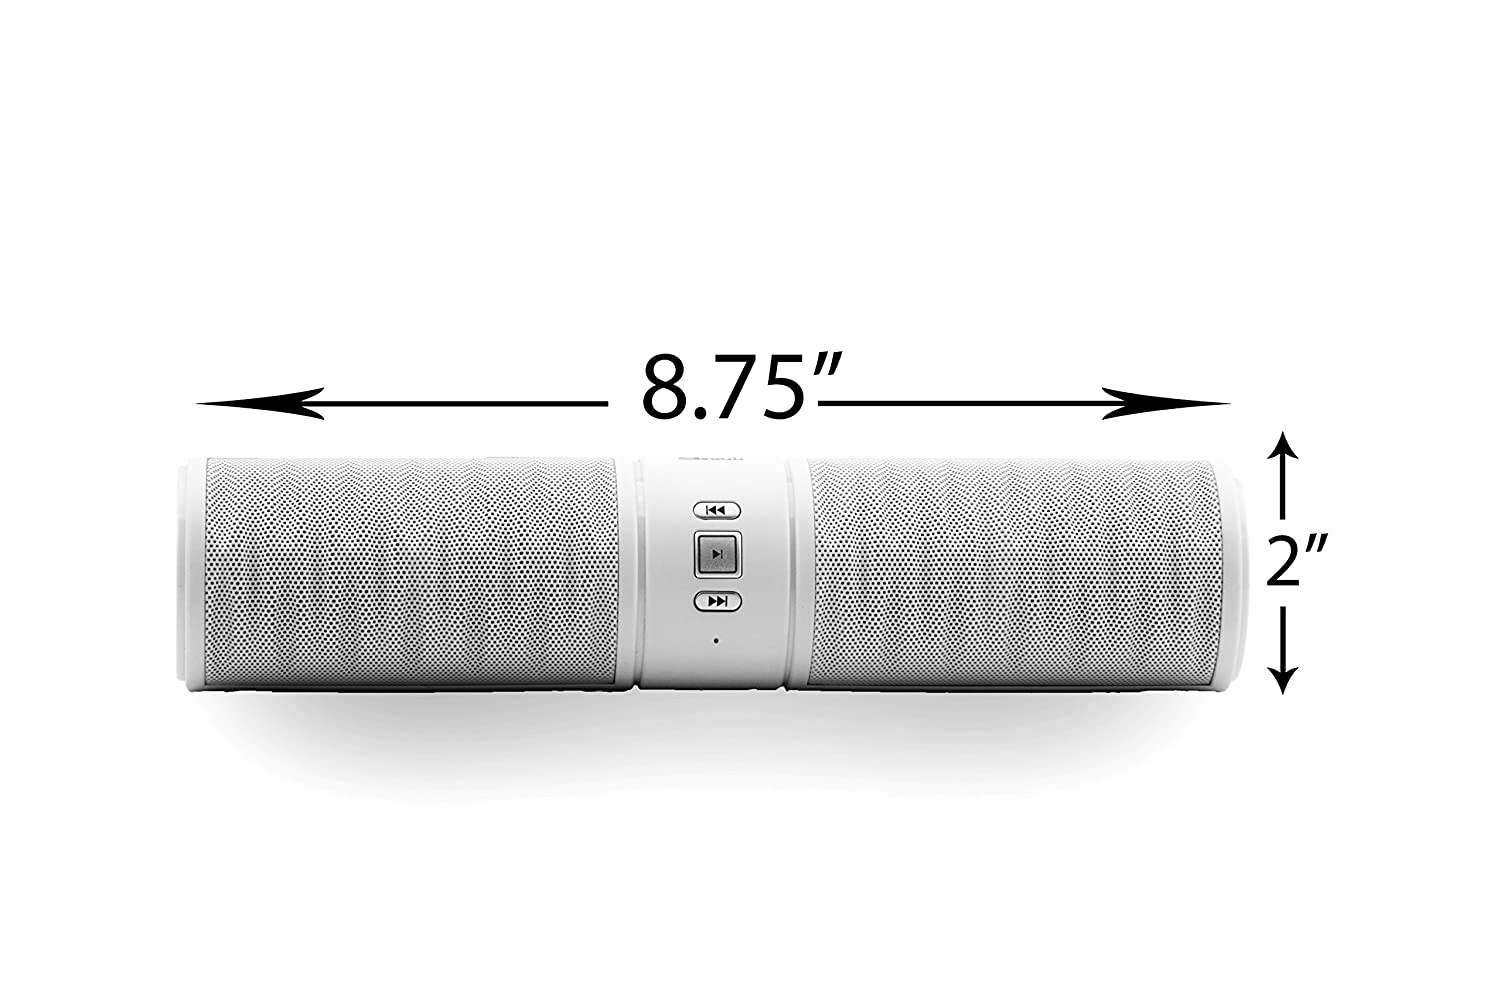 Wireless Bluetooth Speaker, Roll (White) Ultra-portable , Powerful Sound with Build in Microphone, Works for Iphone 4, 4s, 5, 5s, 6, 6 Plus, Ipad Mini, Ipad 4/3/2, Itouch, Blackberry, Nexus, Samsung, Htc, Lg and Other Smart Phones, Tablets and Mp3 Player flower pattern protective pu case w stand auto sleep for ipad air black multicolored